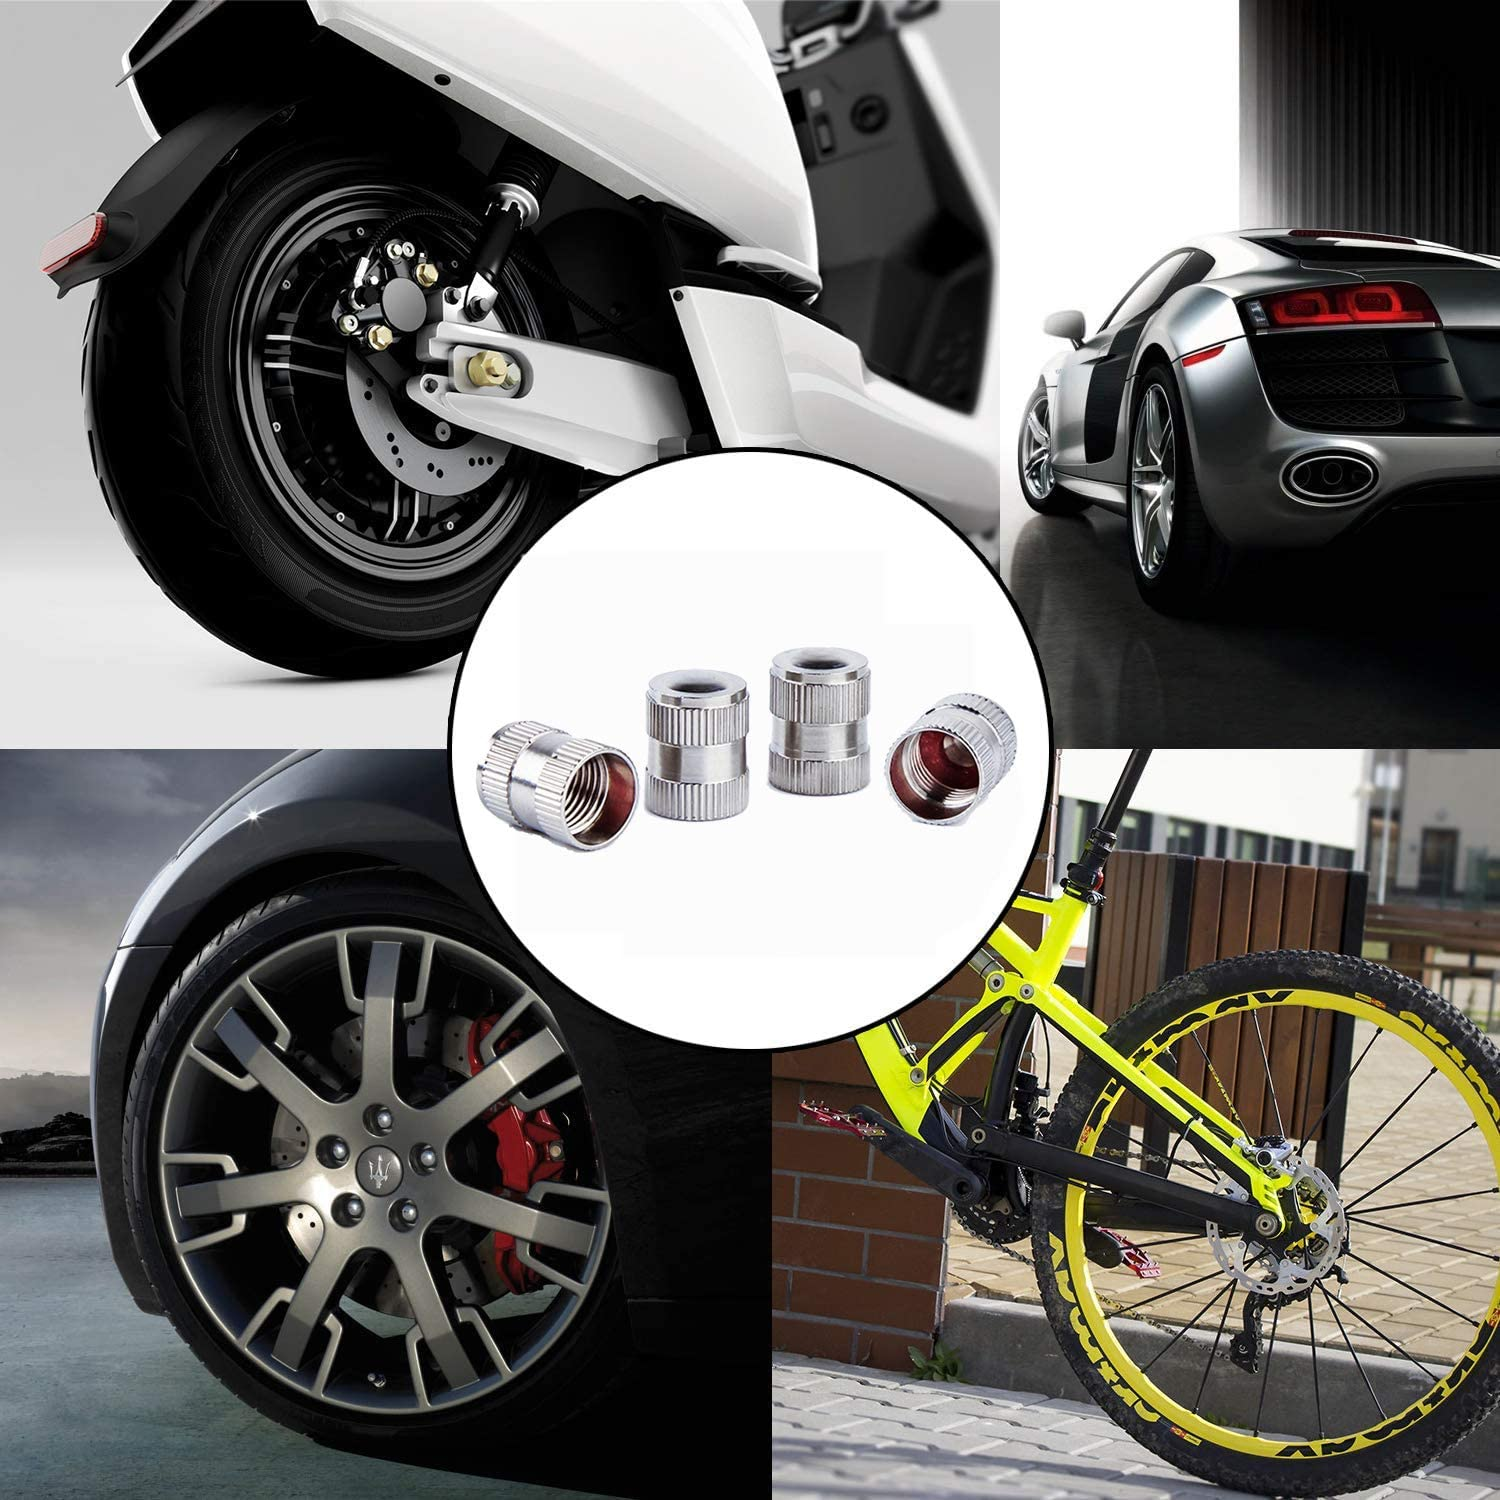 Trucks DXIA 8 Pieces Tyre Valve Caps Tire Stem Valve Caps Metal Tyre Valve Dust Caps SUVs Universal Valve Stem Caps with Seal Ring Stem Tire Covers for Cars Motorcycles Bike and Bicycle